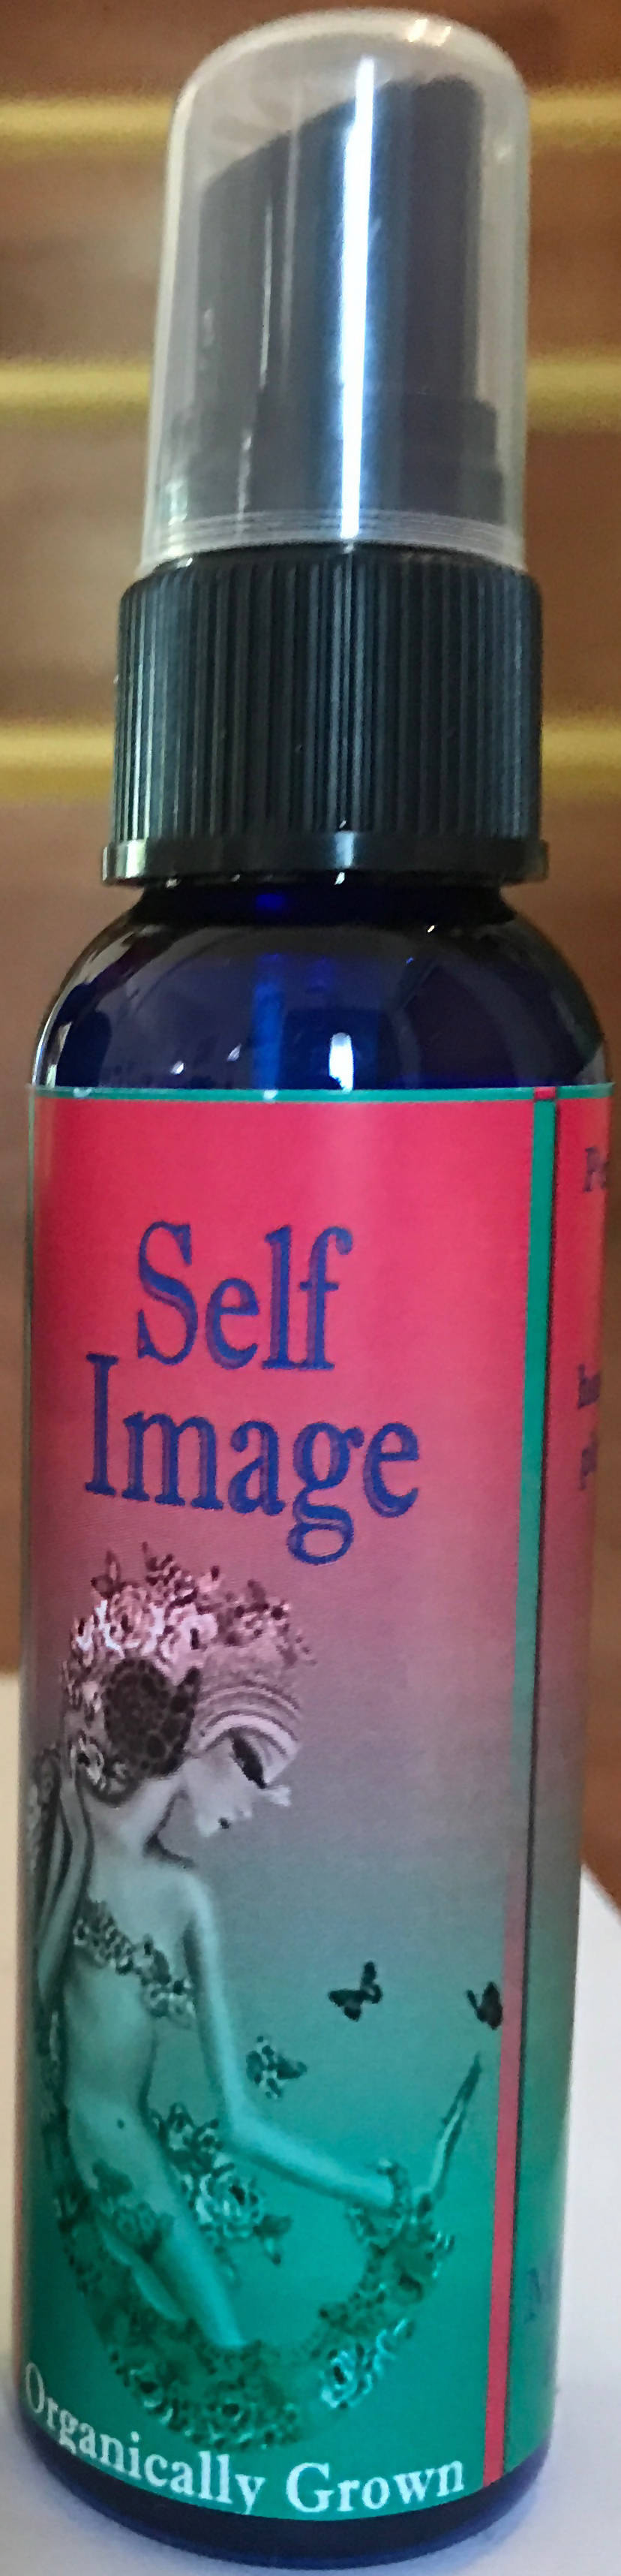 Self Image (Pink Grapefruit scent) 2 oz Spray